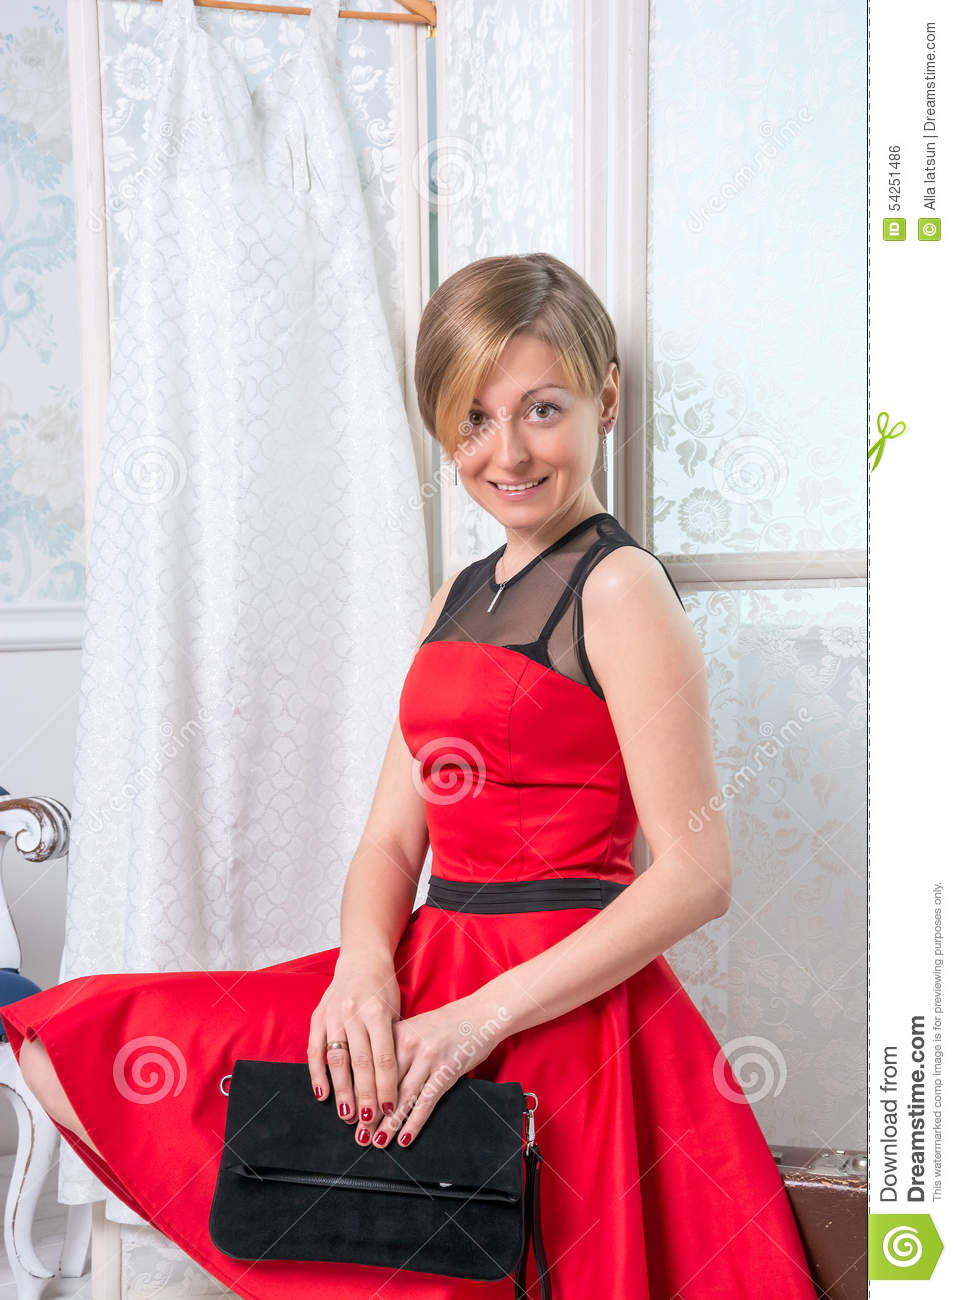 Girl in the red dress is sitting on a suitcase in front of for Going to a wedding dress